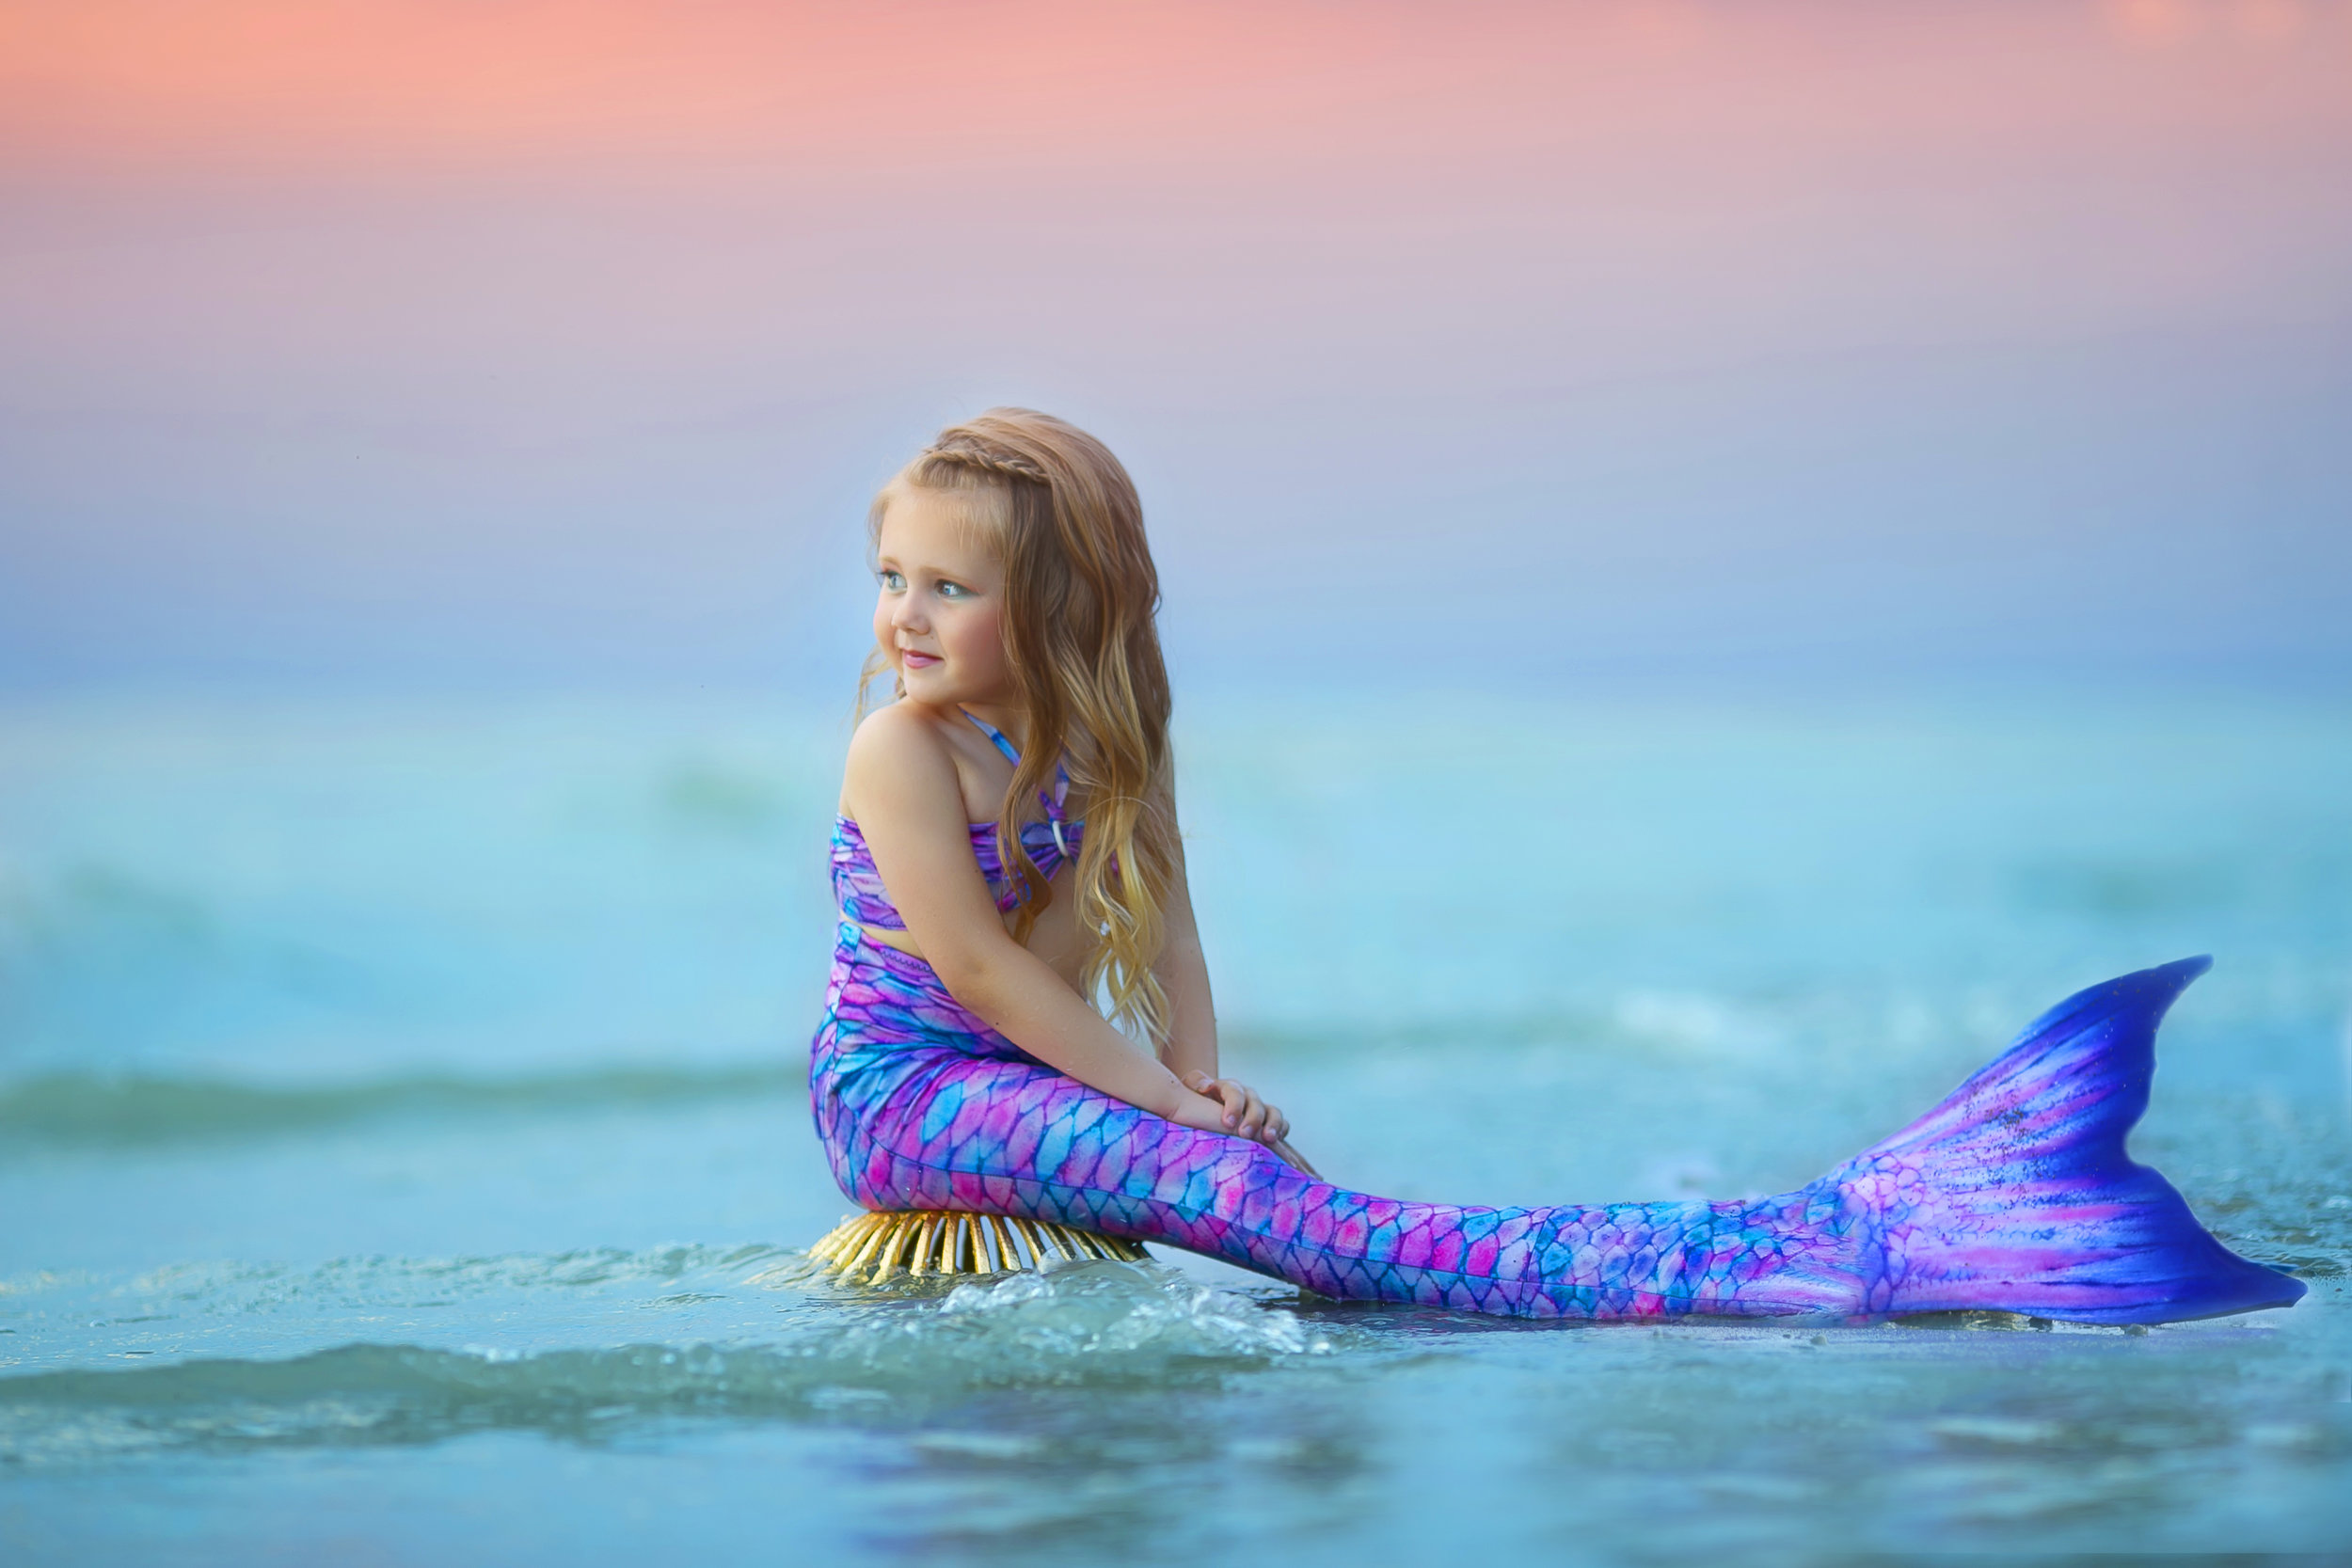 best-photographer-in-buffalo-lake-erie-mermaid-1.jpg